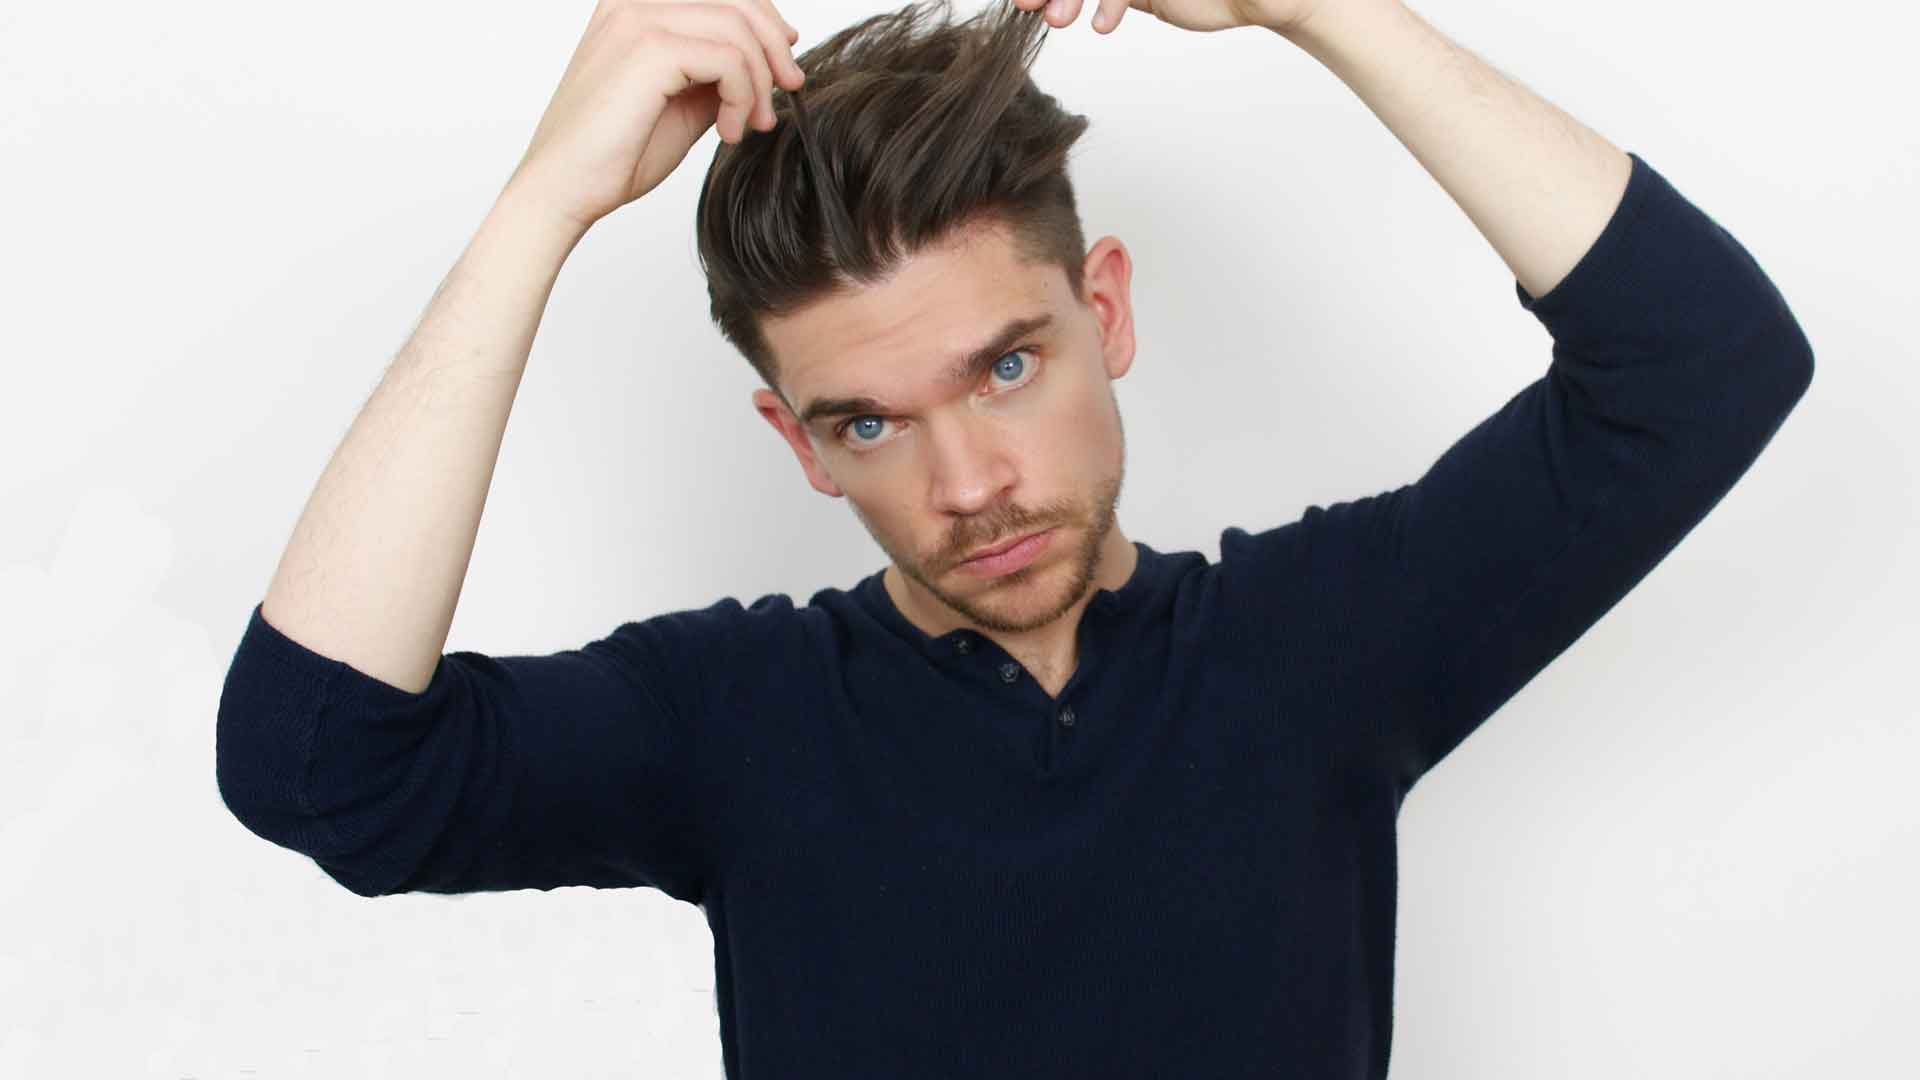 Hairstyle Tips For Guys real simple hairstyle